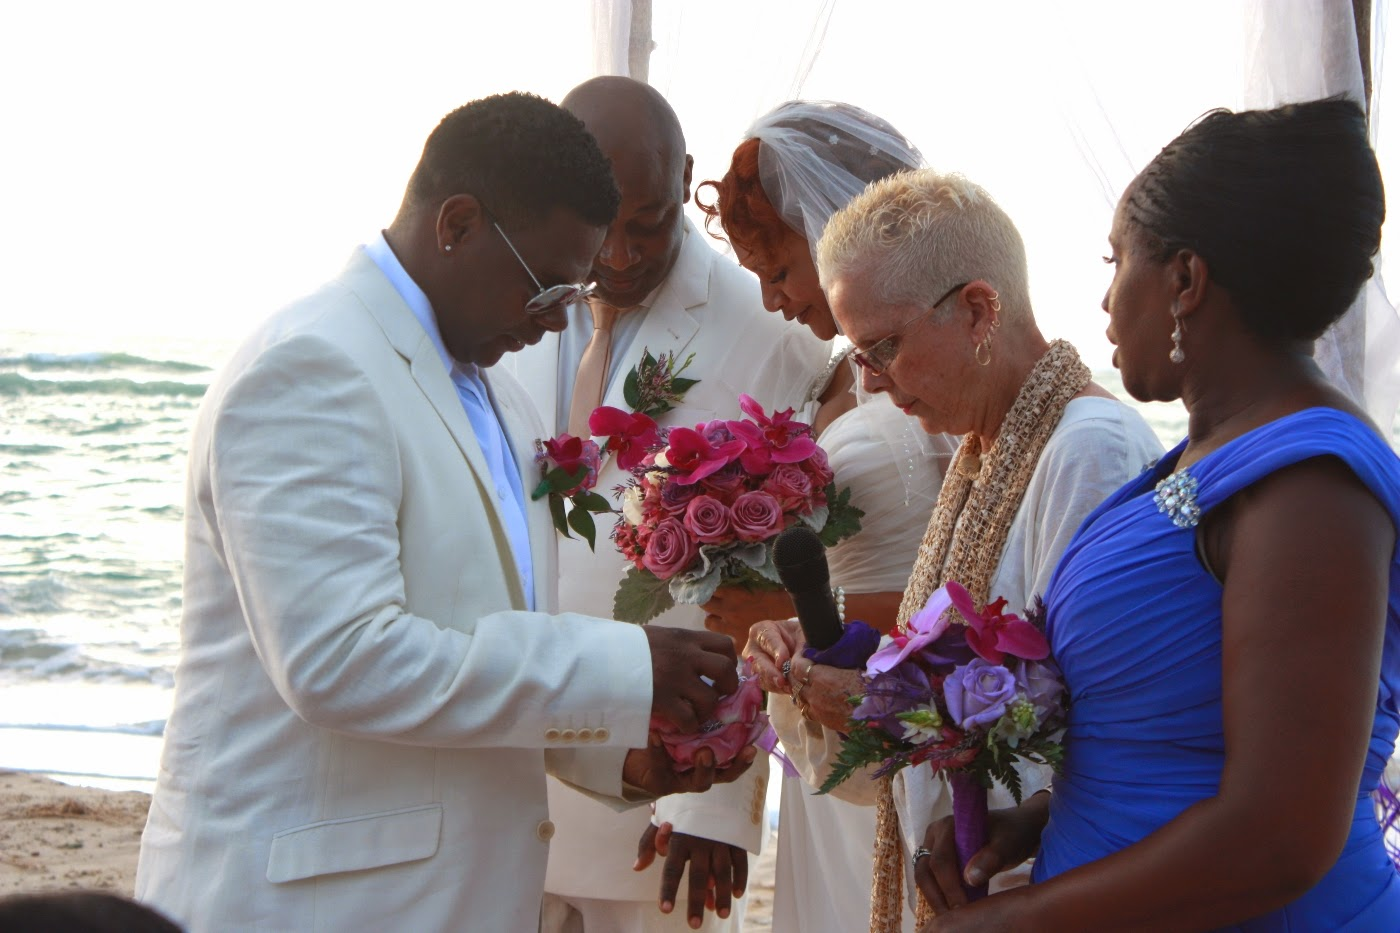 Destination beach wedding for UK couple at Pigeon point